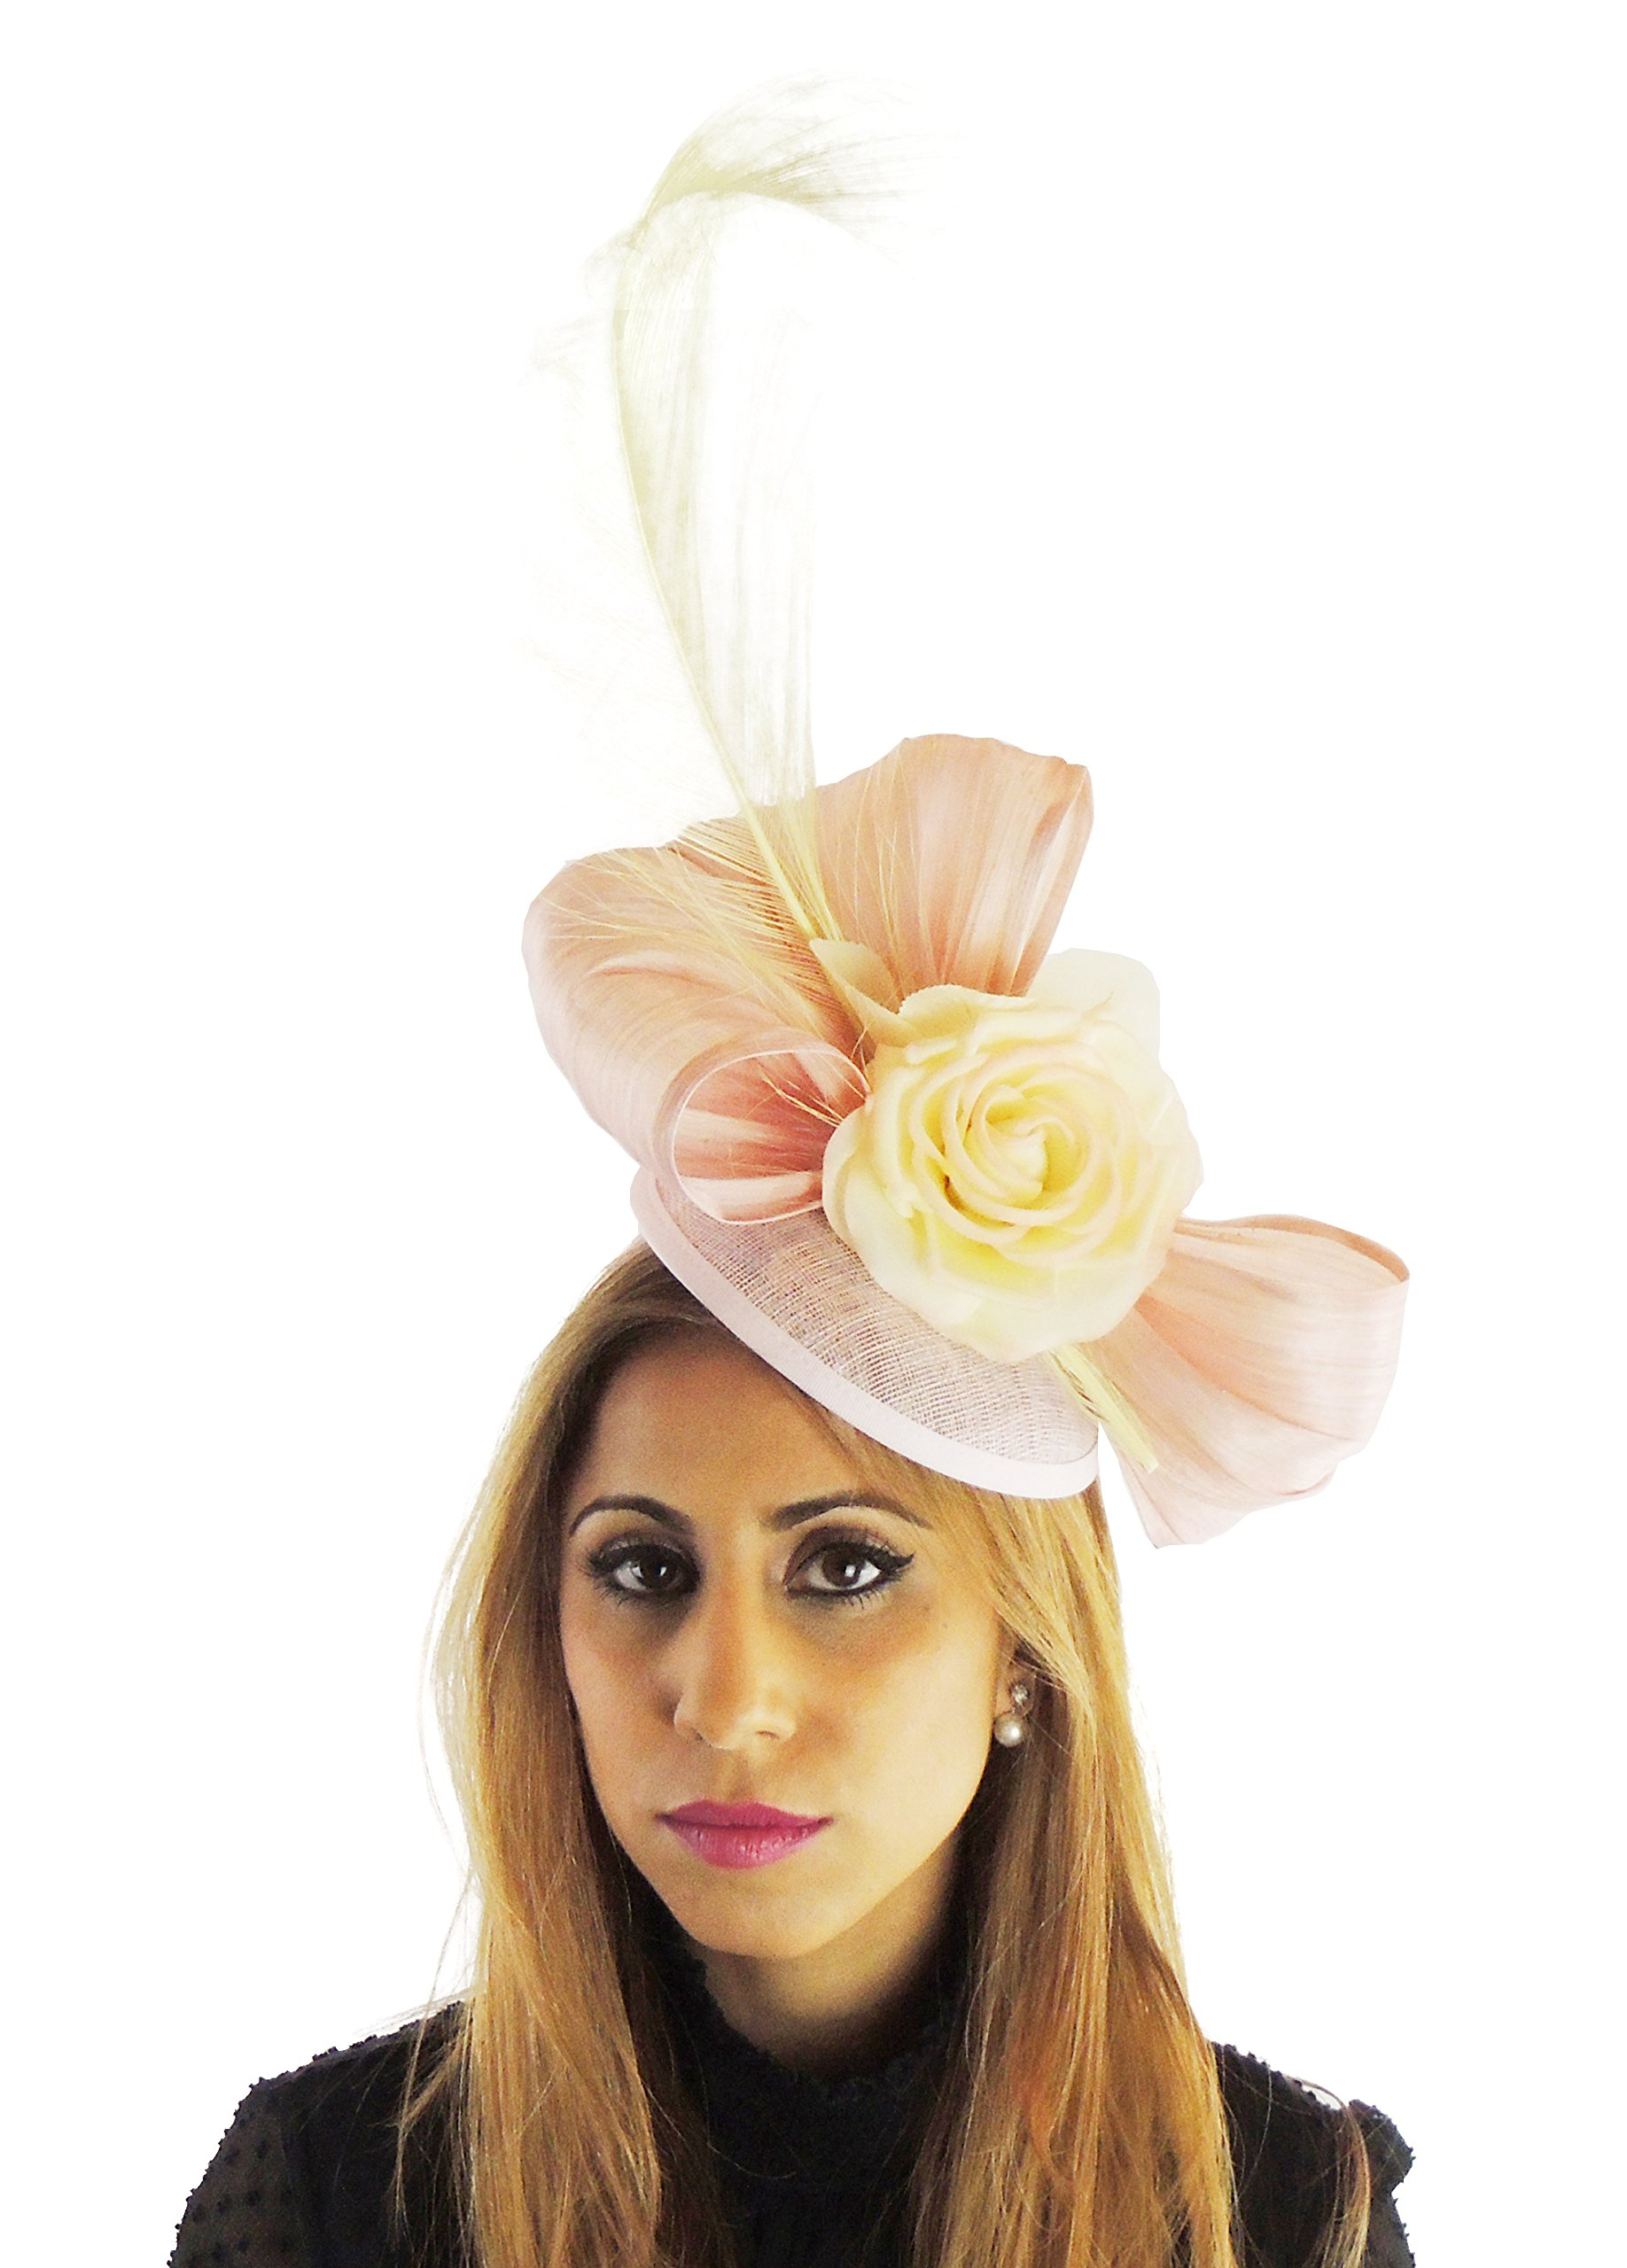 Hats By Cressida Silk Sinamay & Silk Flower Elegant Ladies Ascot Wedding Fascinator Hat Candy Pink & Yellow by Hats By Cressida